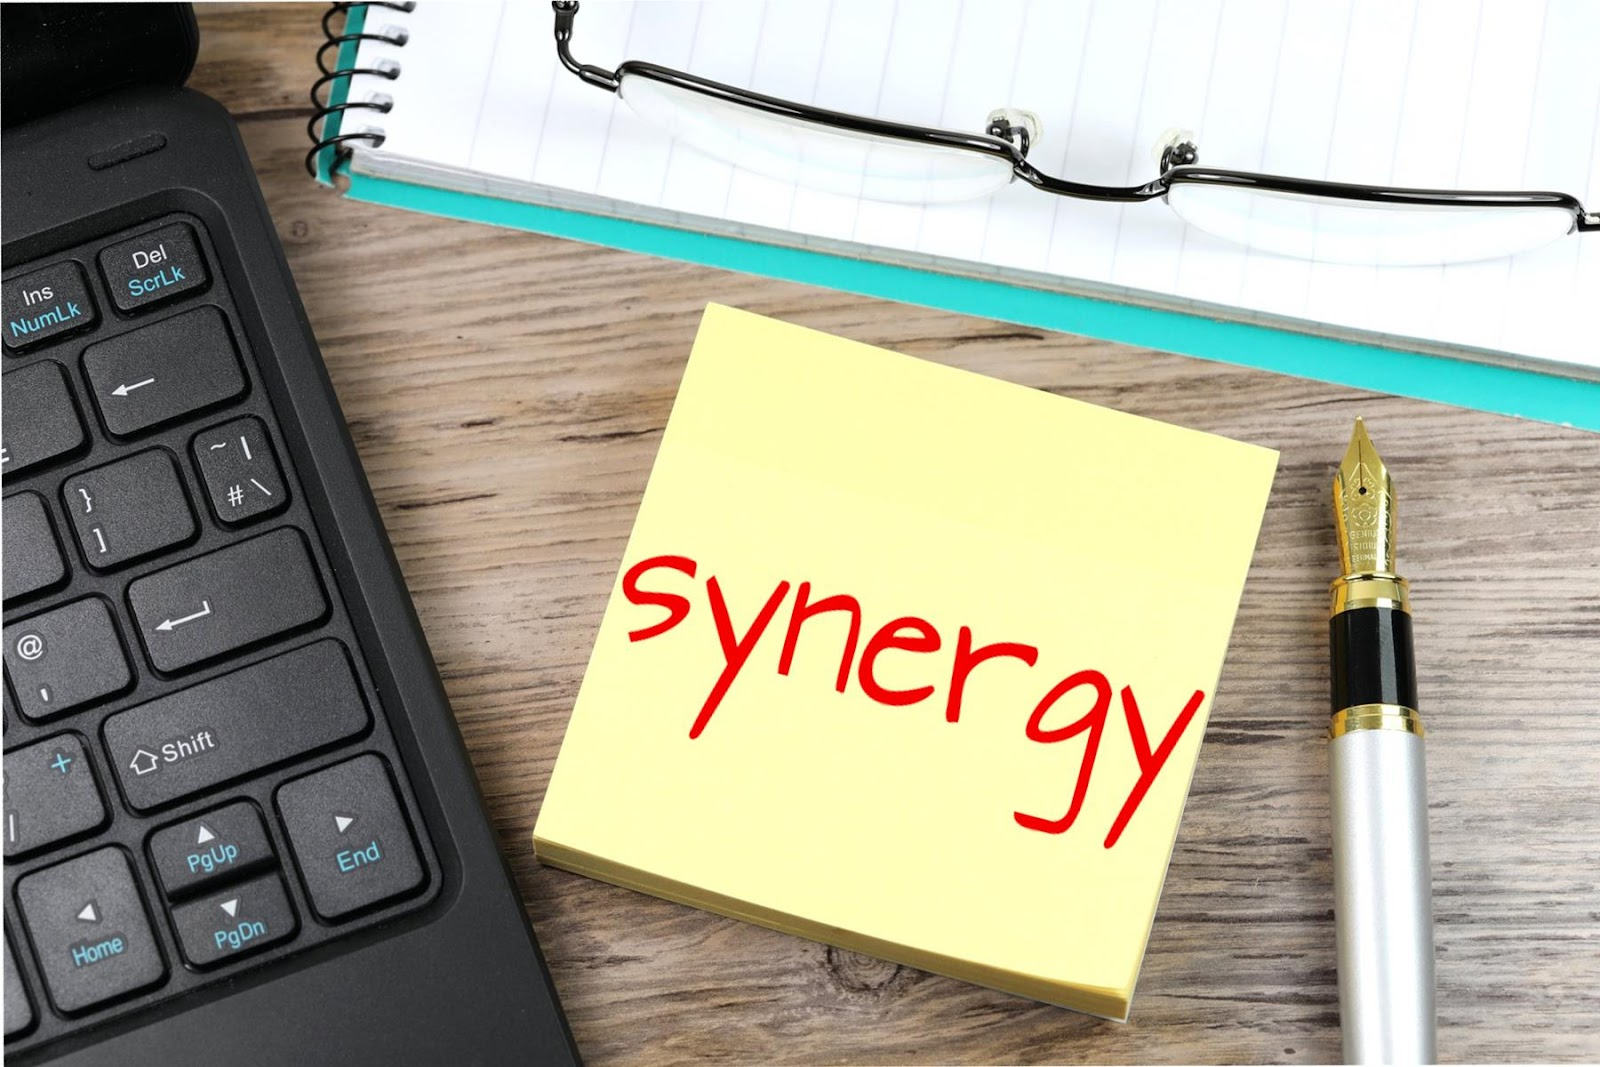 synergy allows for greater human connection